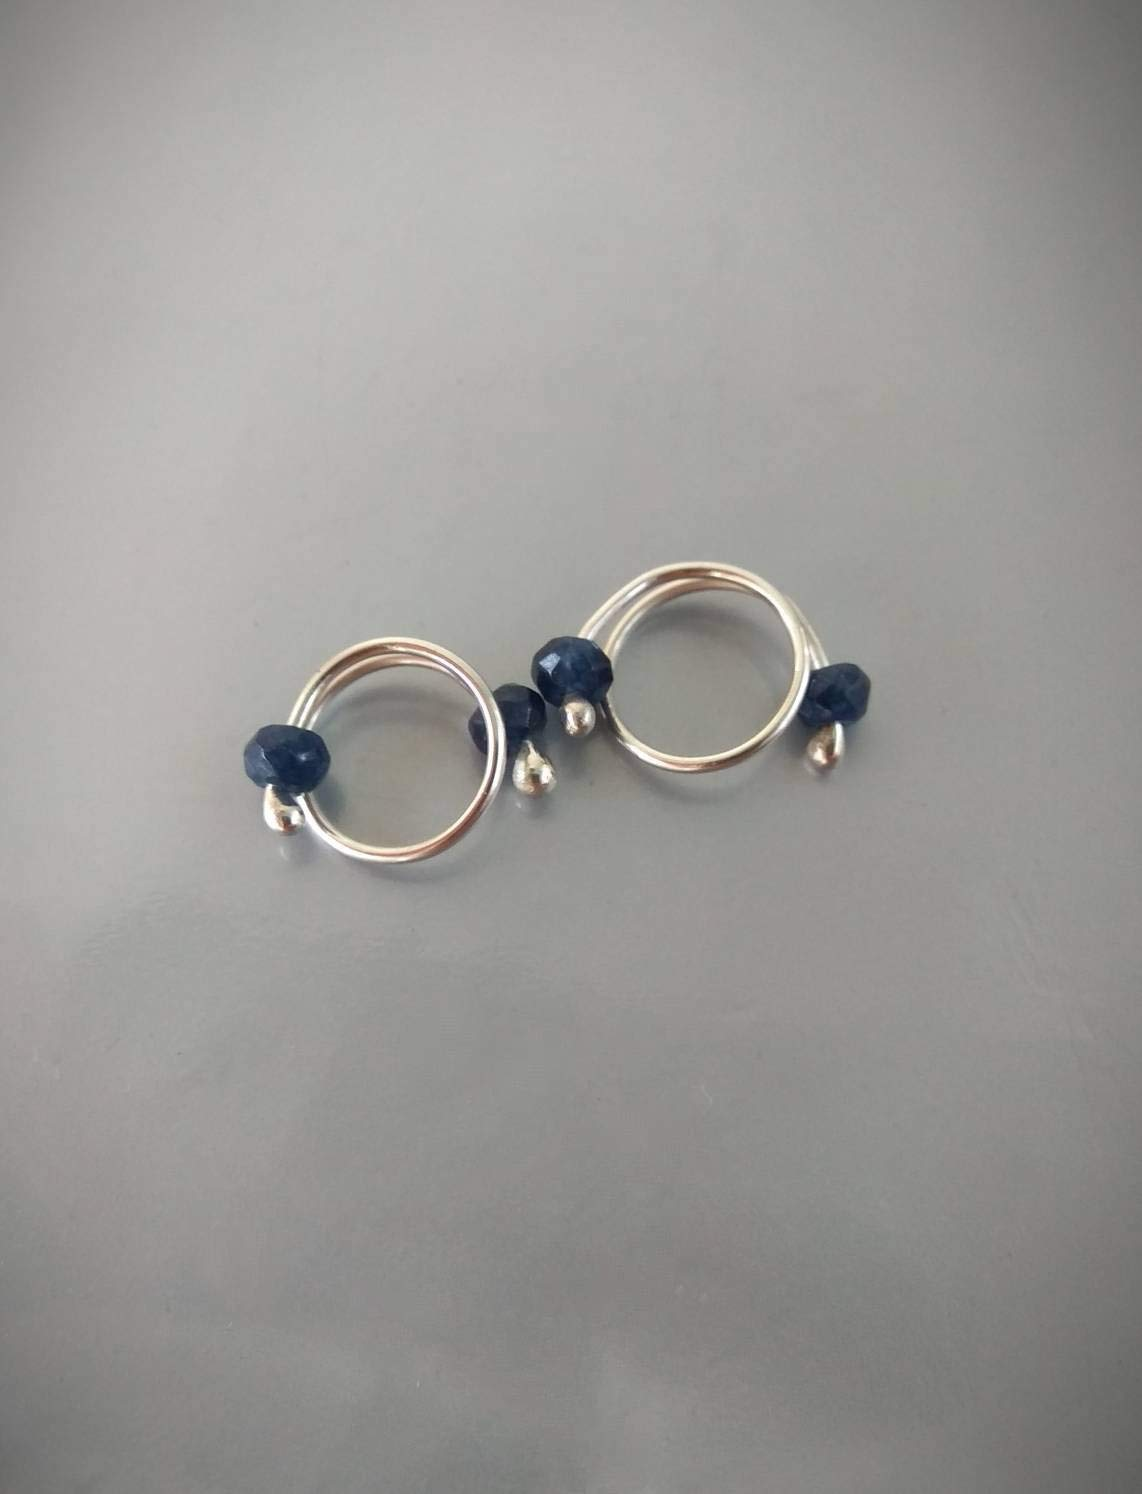 Amazon.com: Non Piercing Nipple Rings With blue quartz beads - Solid  sterling Silver - Fake Piercing - gift for wife: Handmade